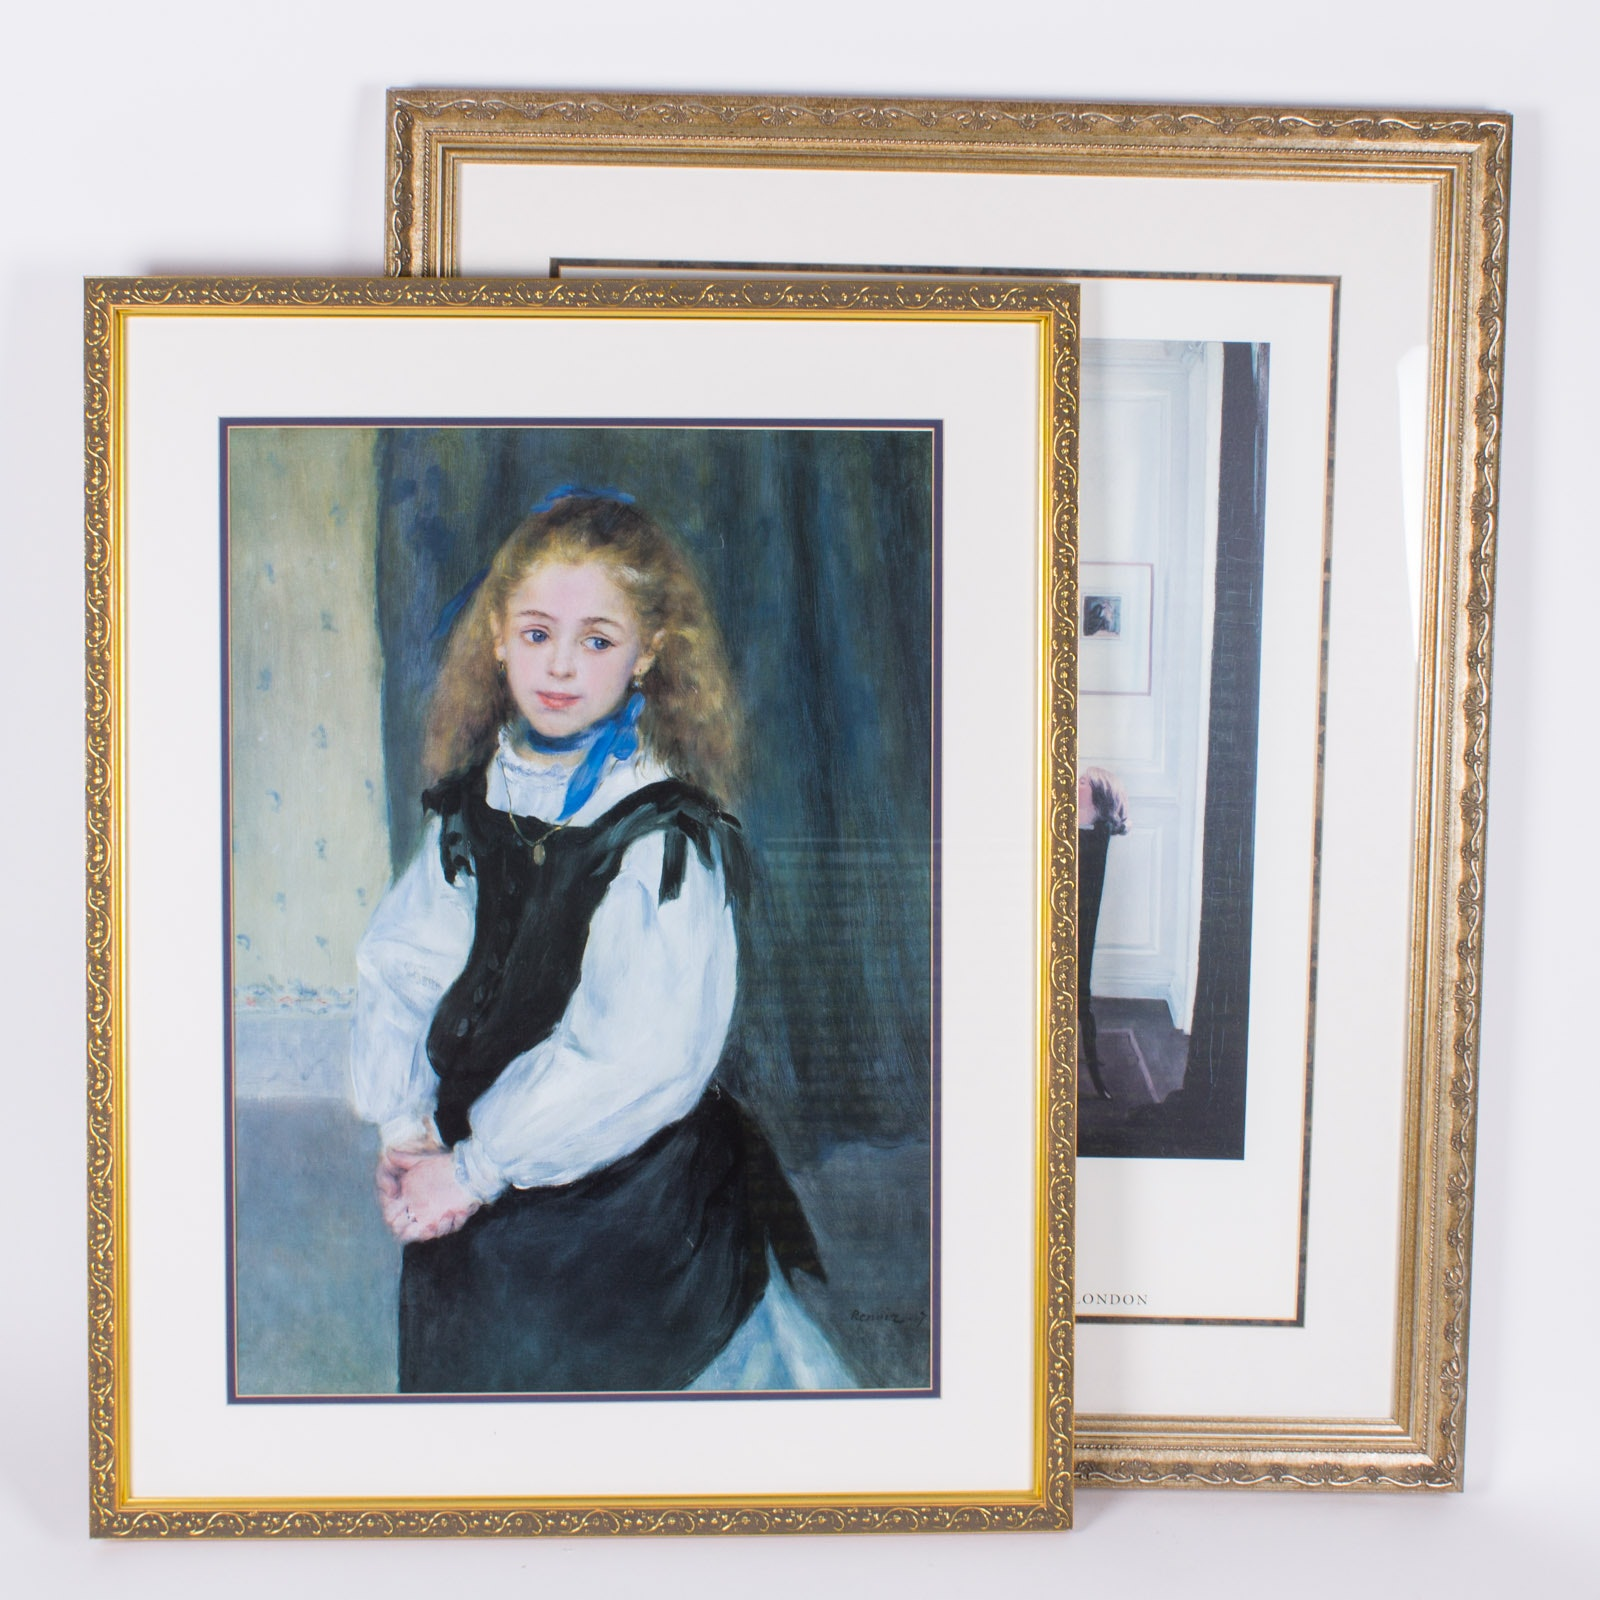 Pairing of Framed Reproduction Prints After Paintings